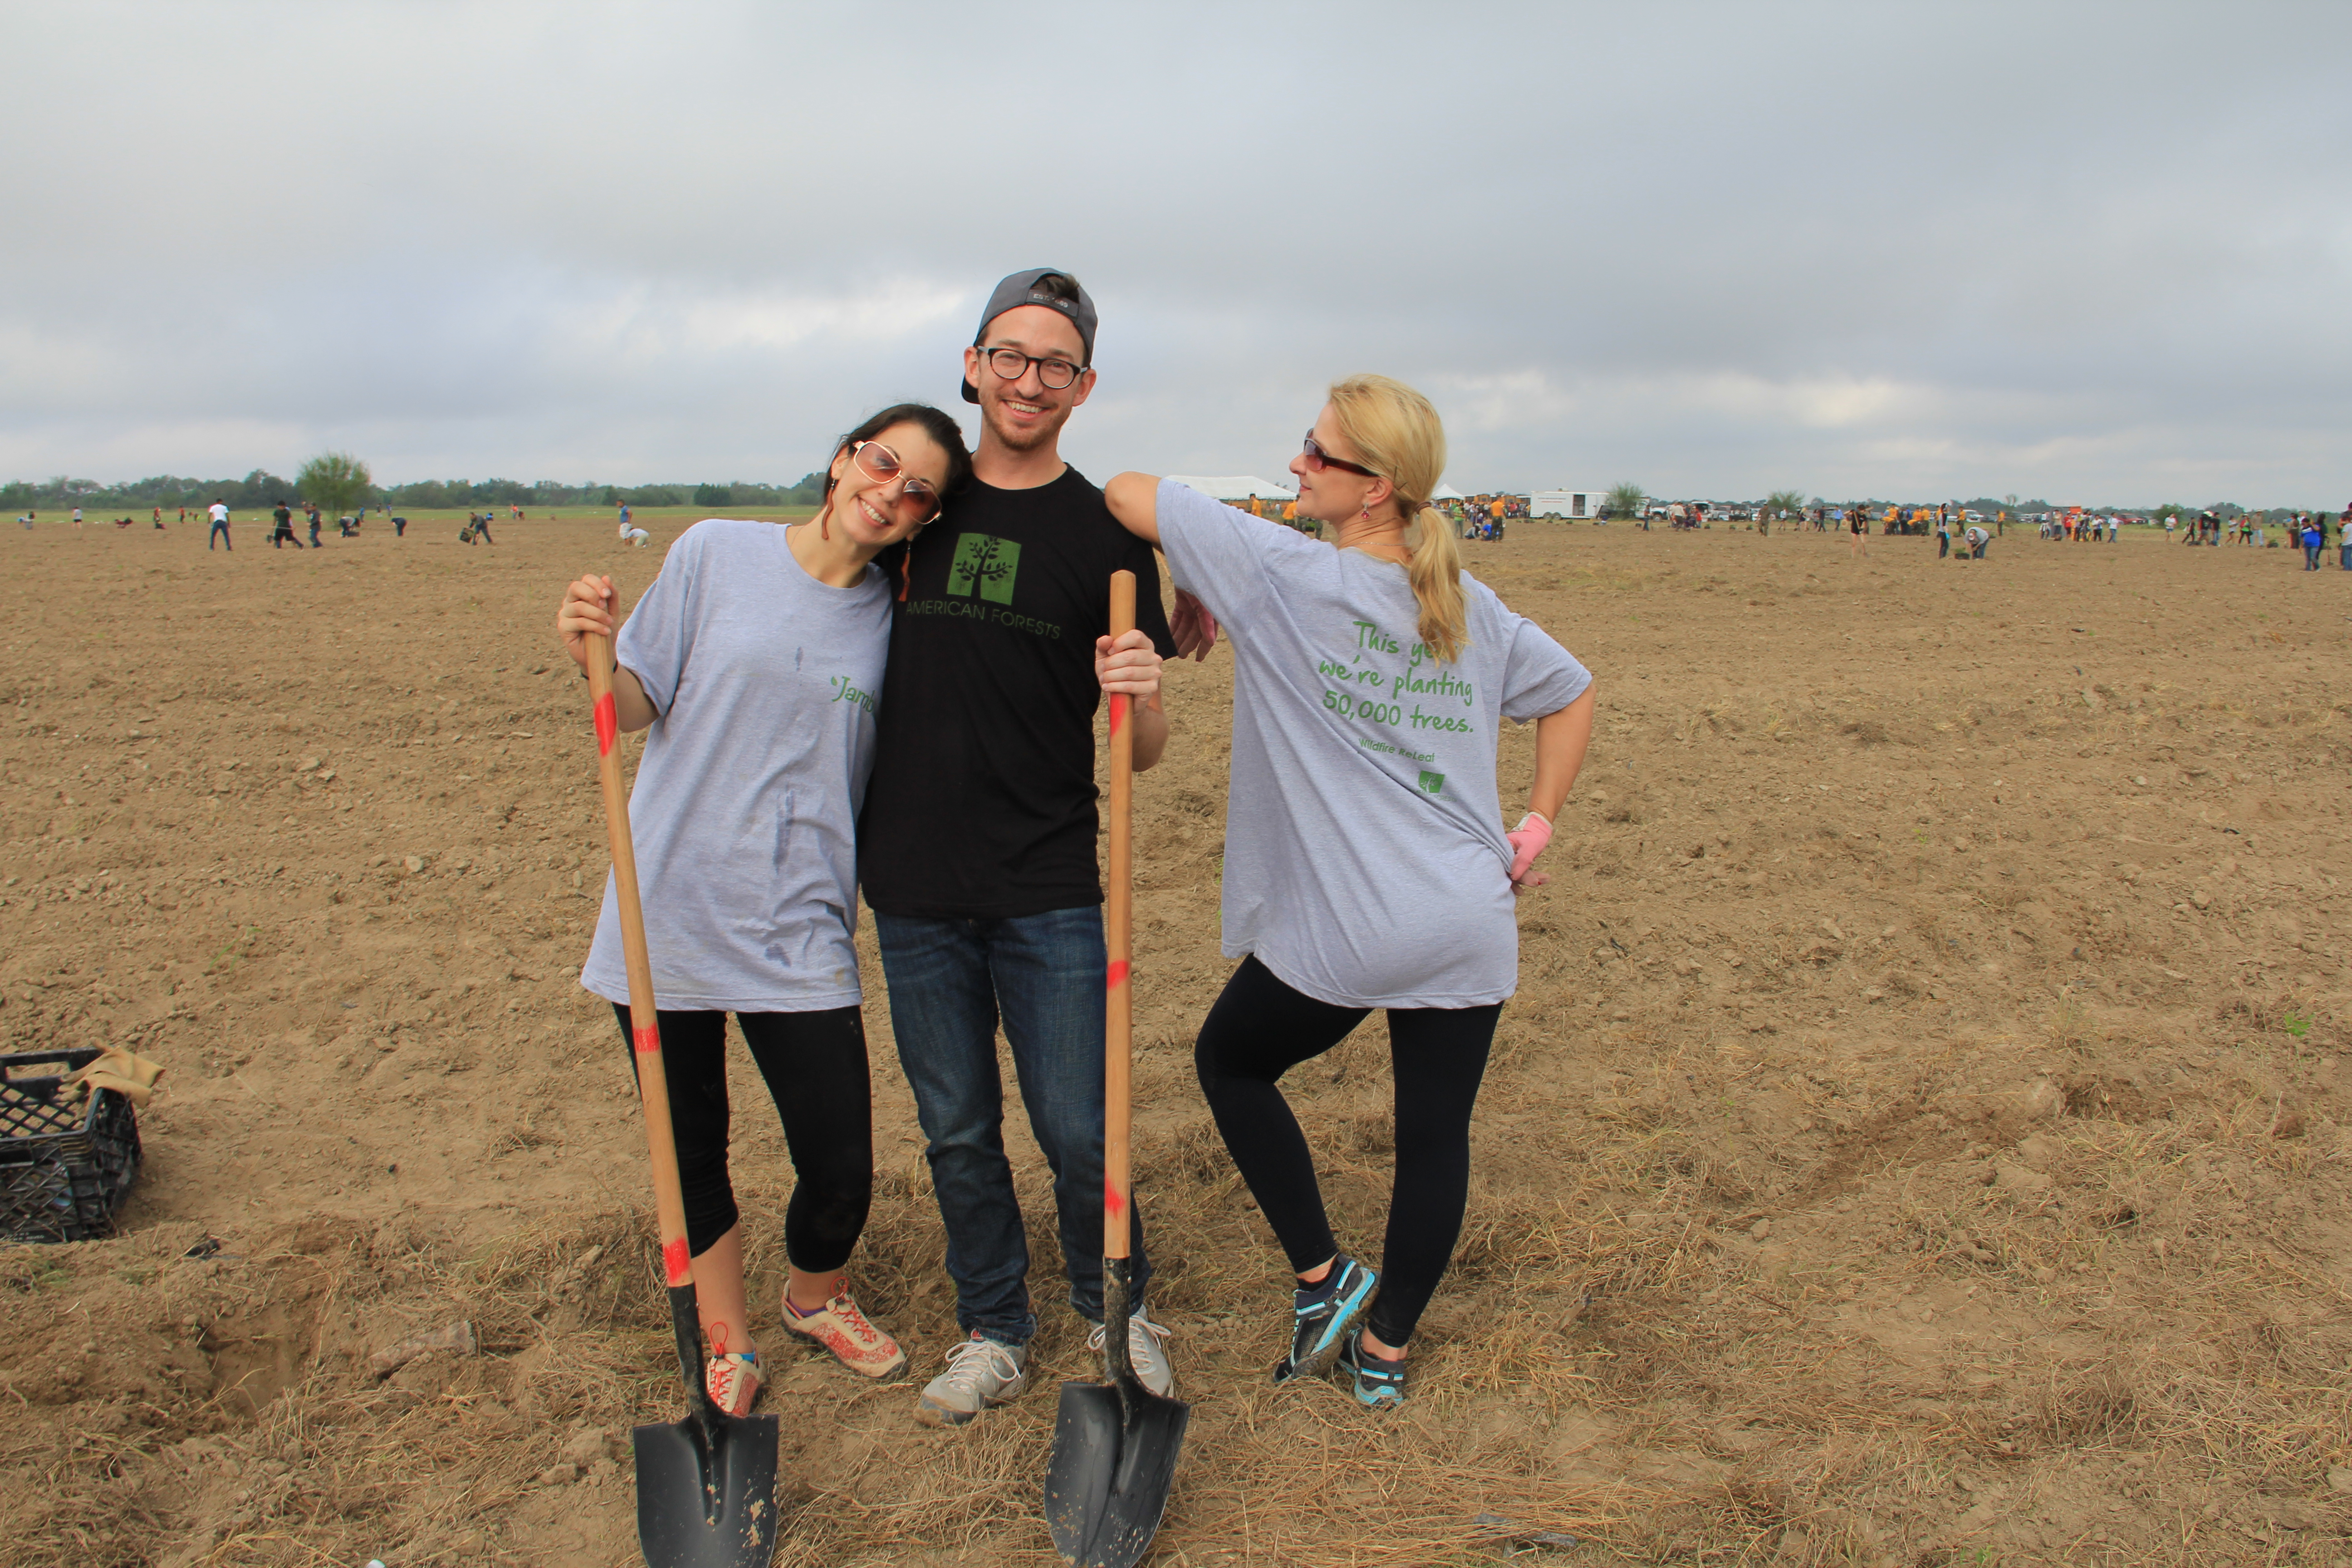 American Forests staff and Volunteers standing in empty field with shovels